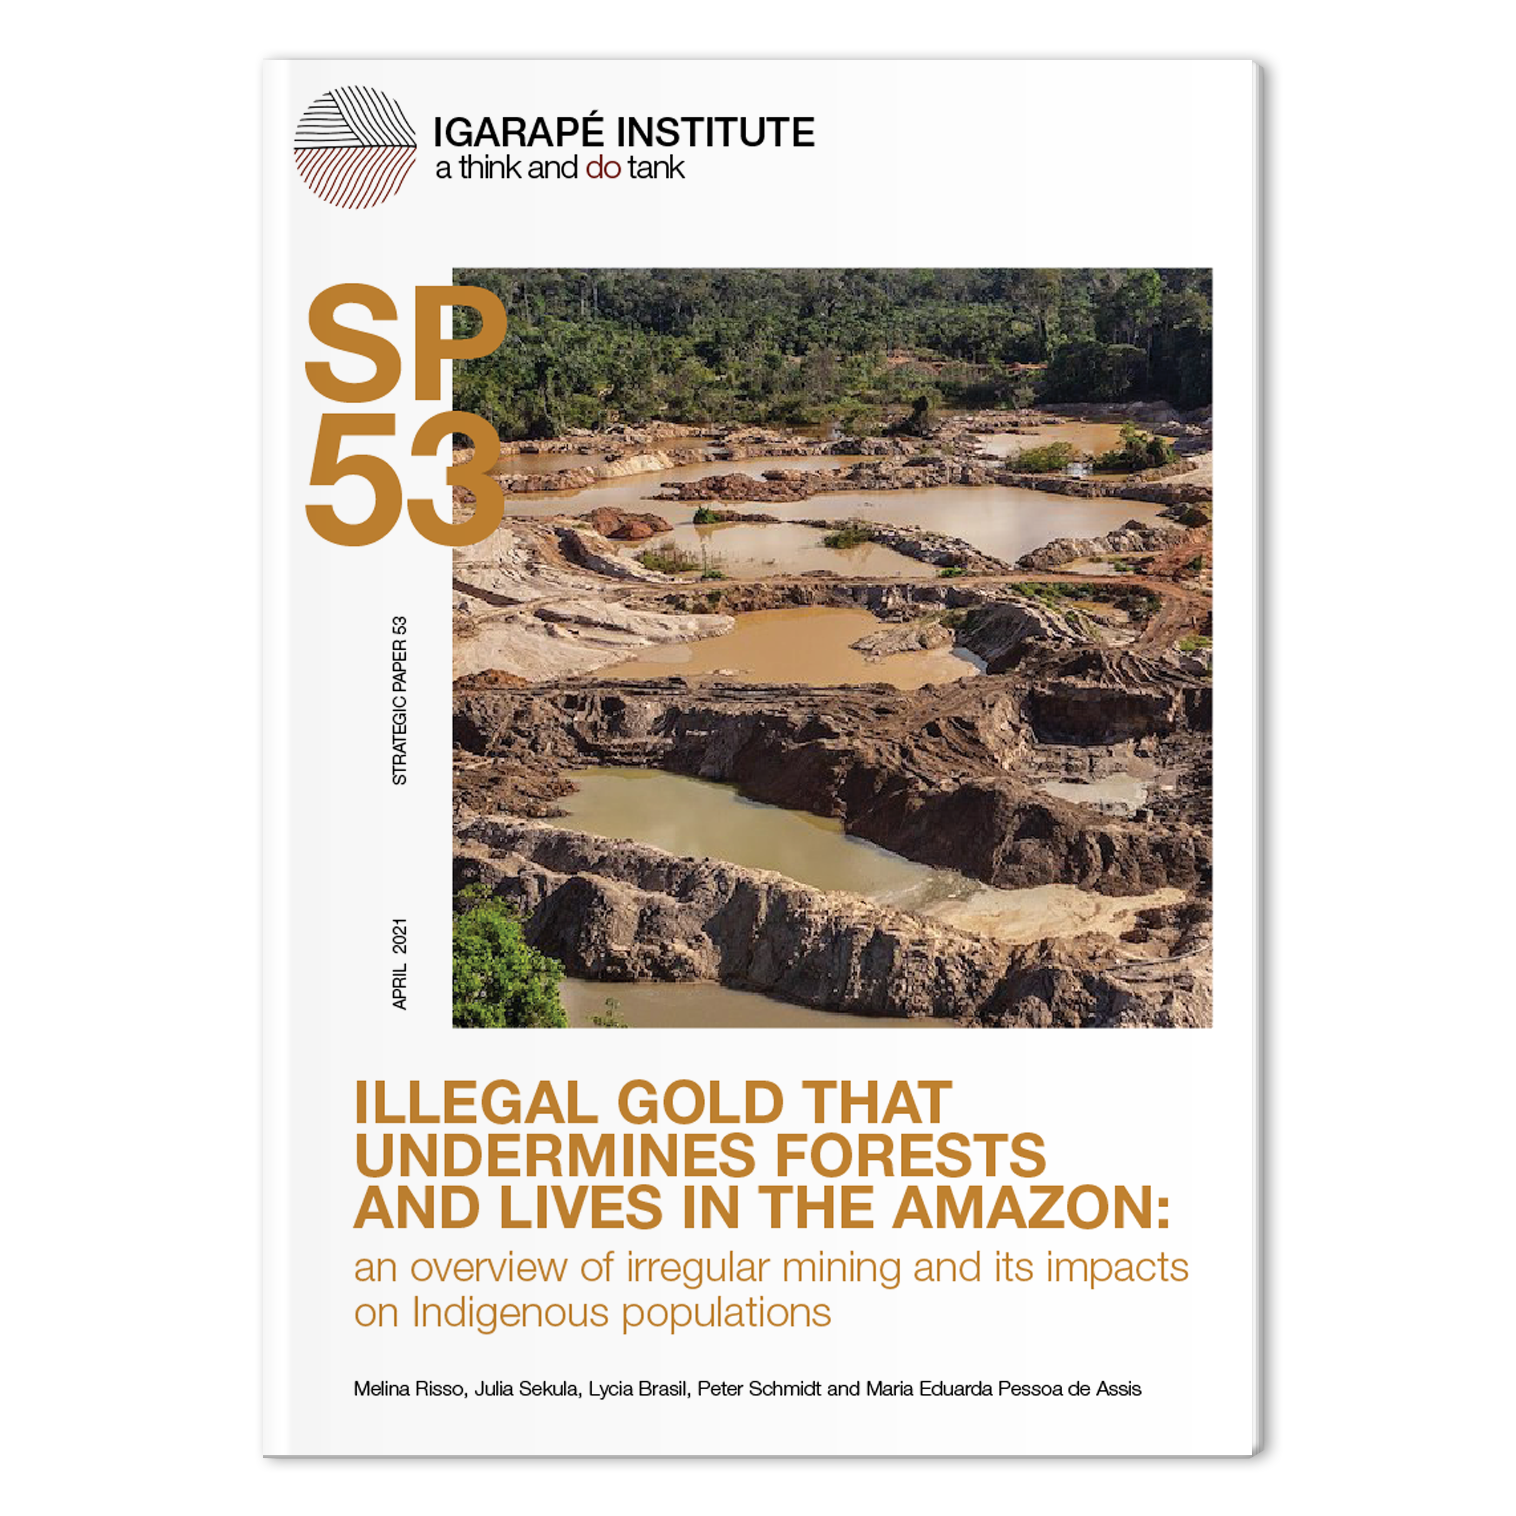 SP53 Illegal Gold Mining in Brazil